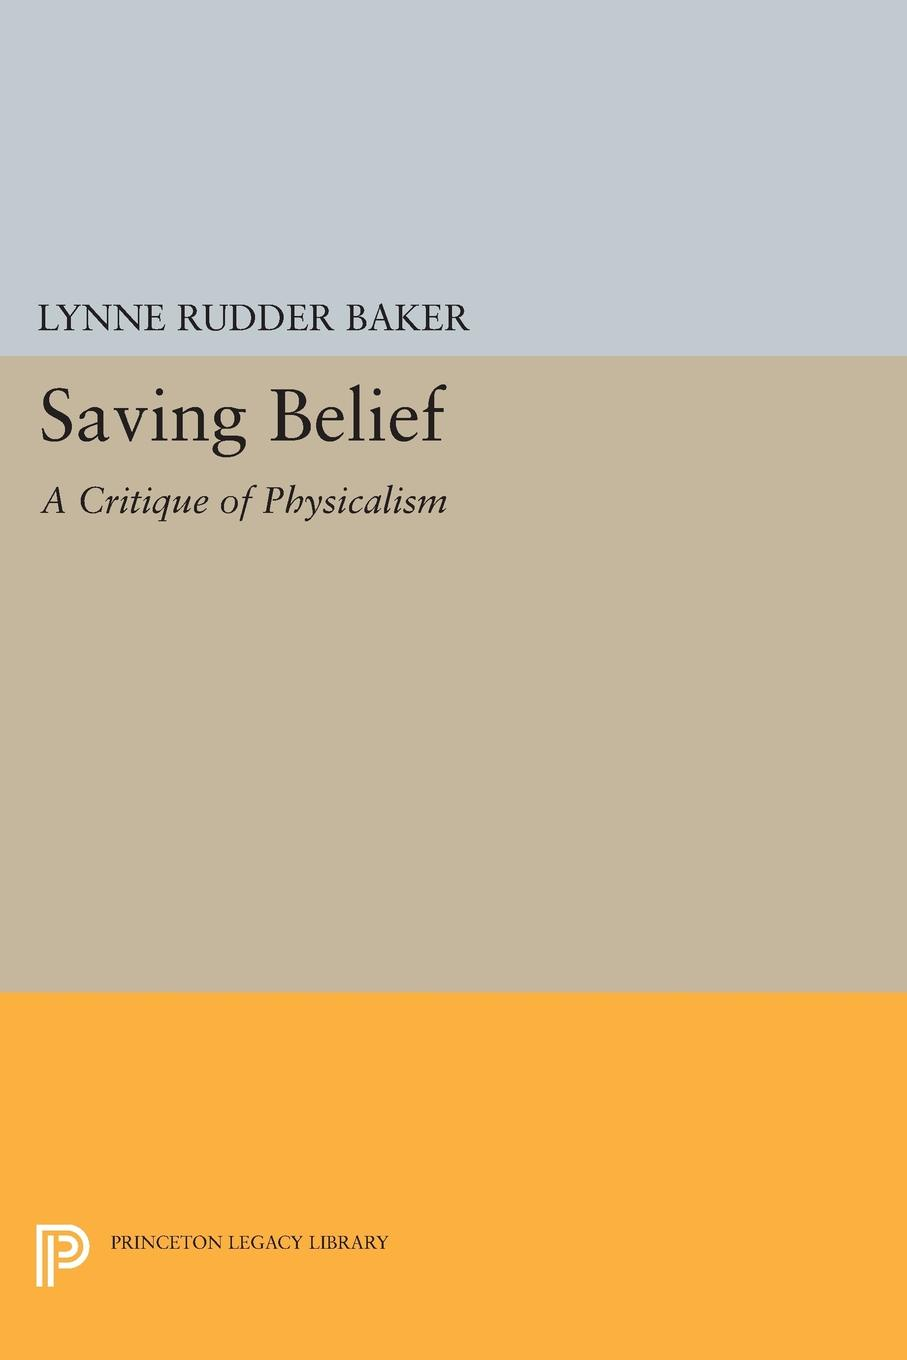 Lynne Rudder Baker Saving Belief. A Critique of Physicalism carlson licia cognitive disability and its challenge to moral philosophy